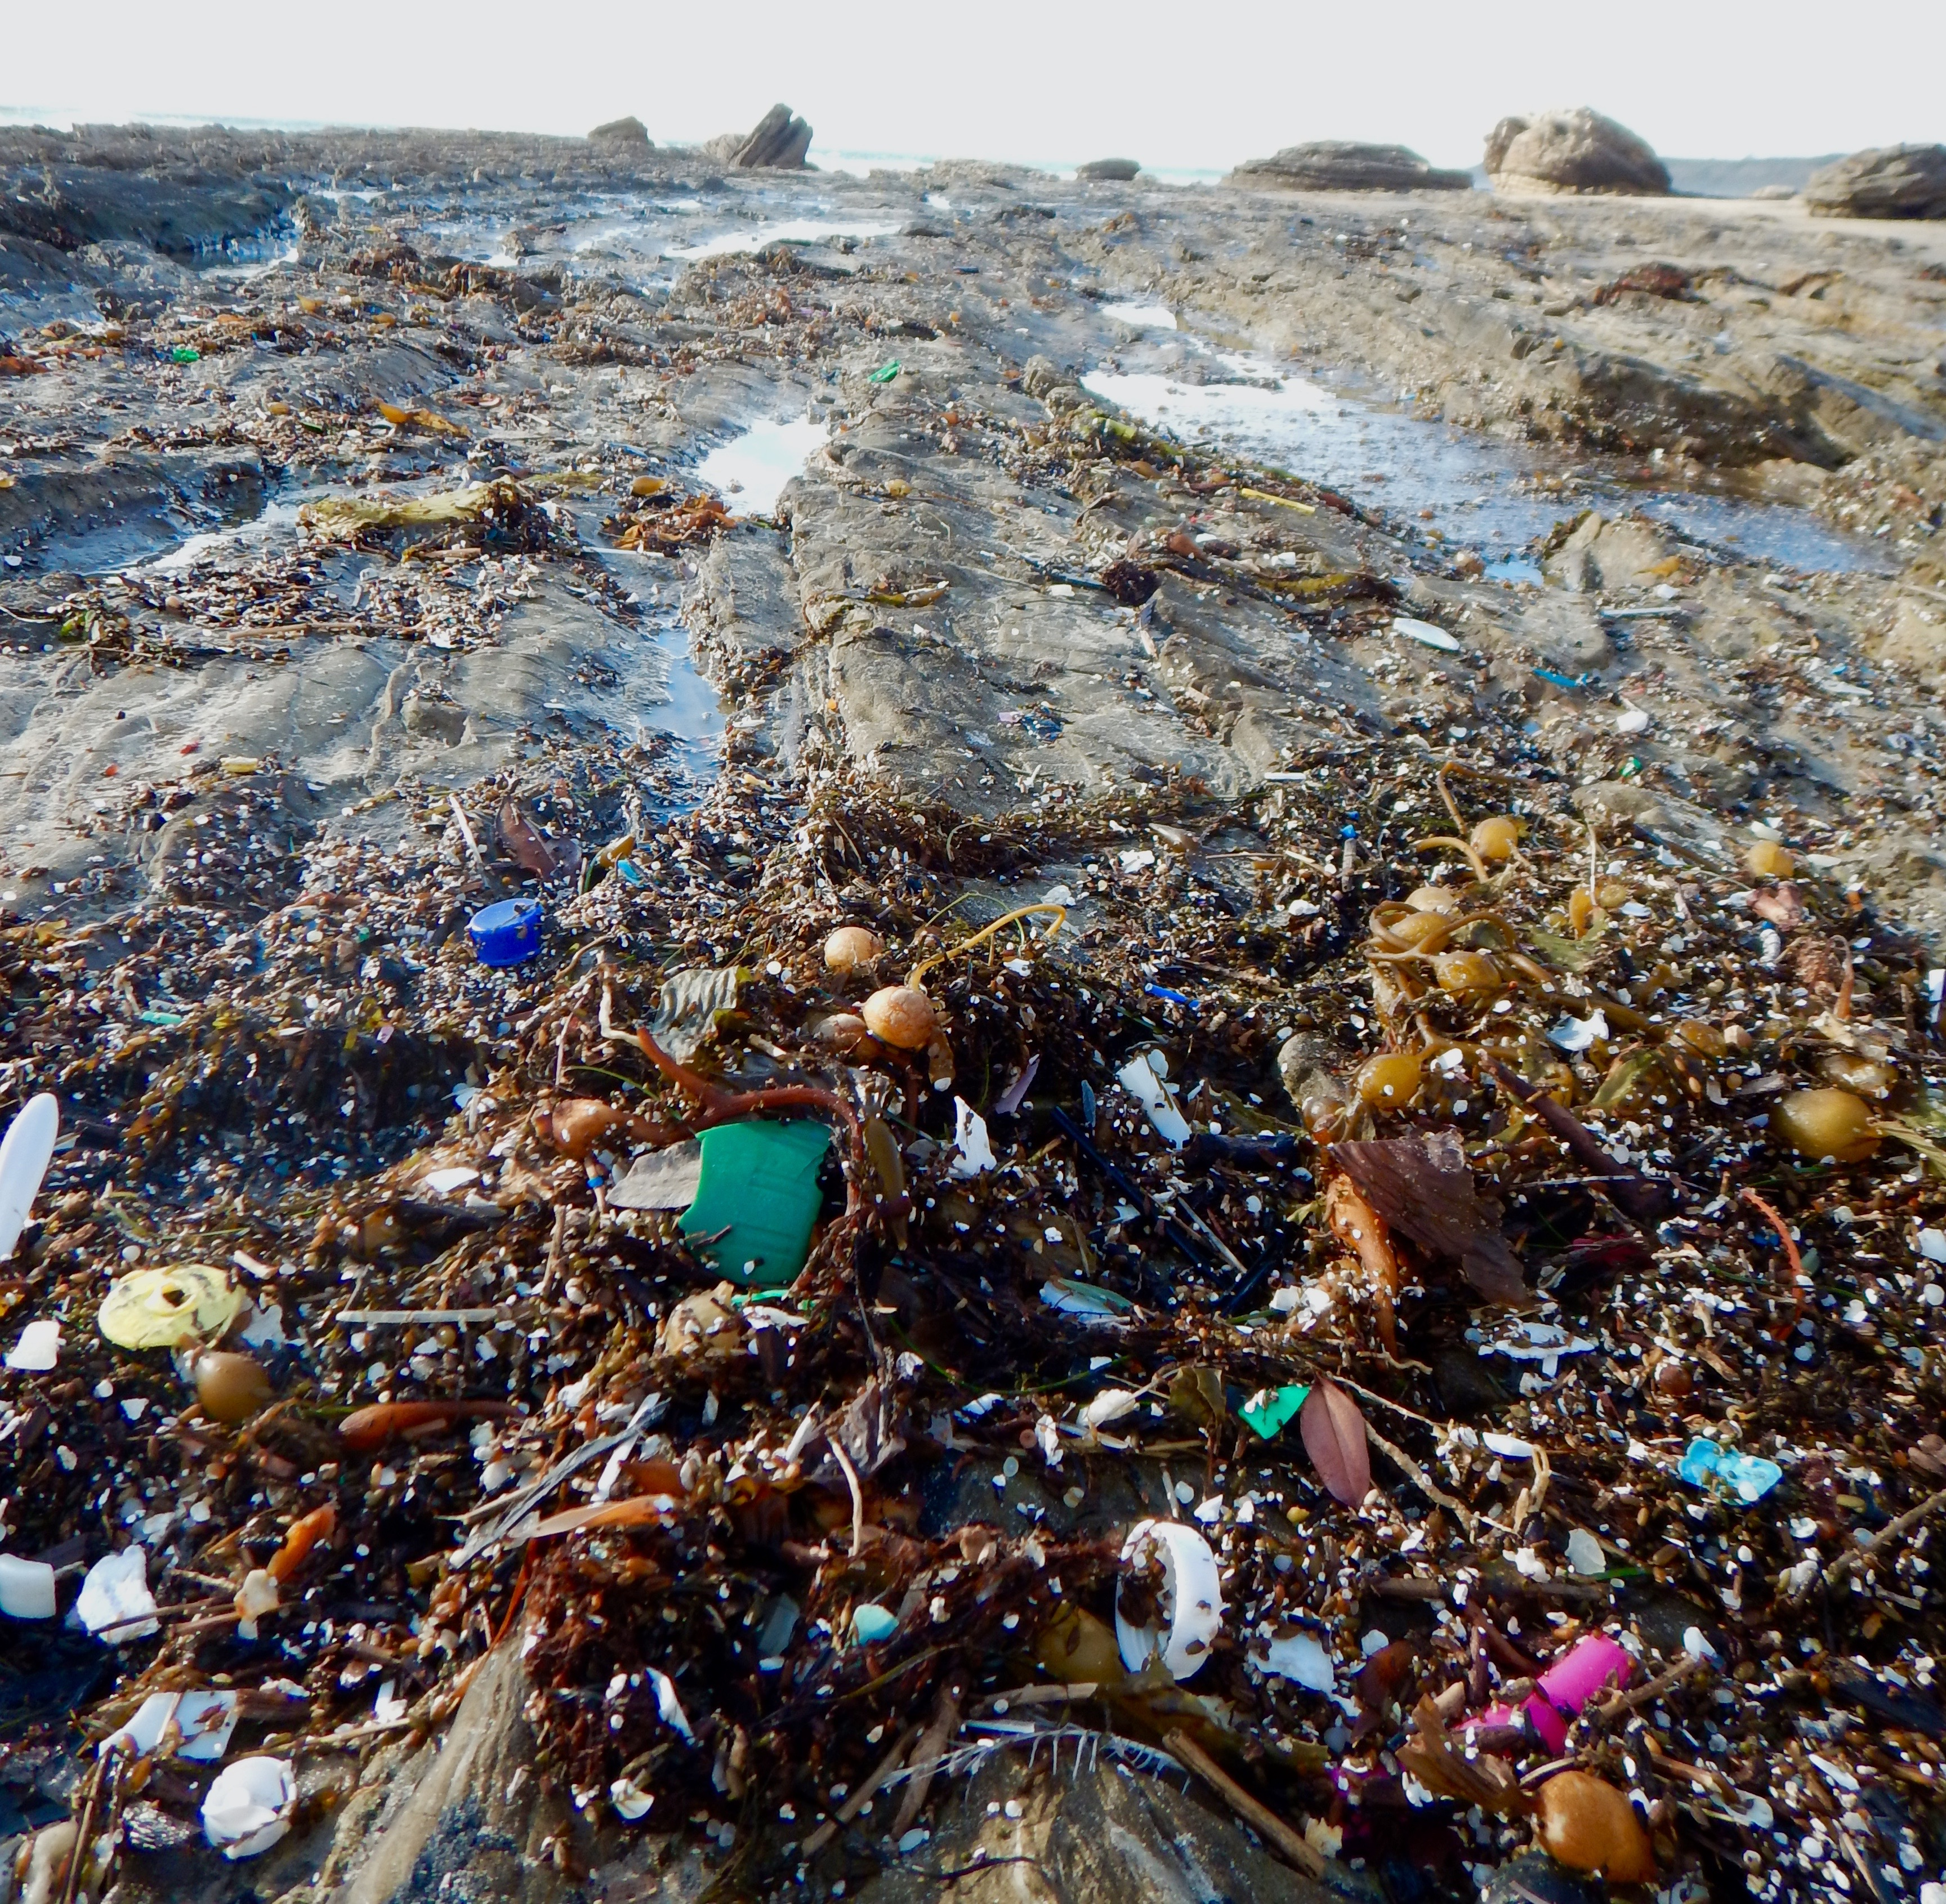 french essay of pollution in oceans The ocean's pollution problem the effects of ocean pollution on the environment essay - our oceans take a large beating every day by the extremely large amount.